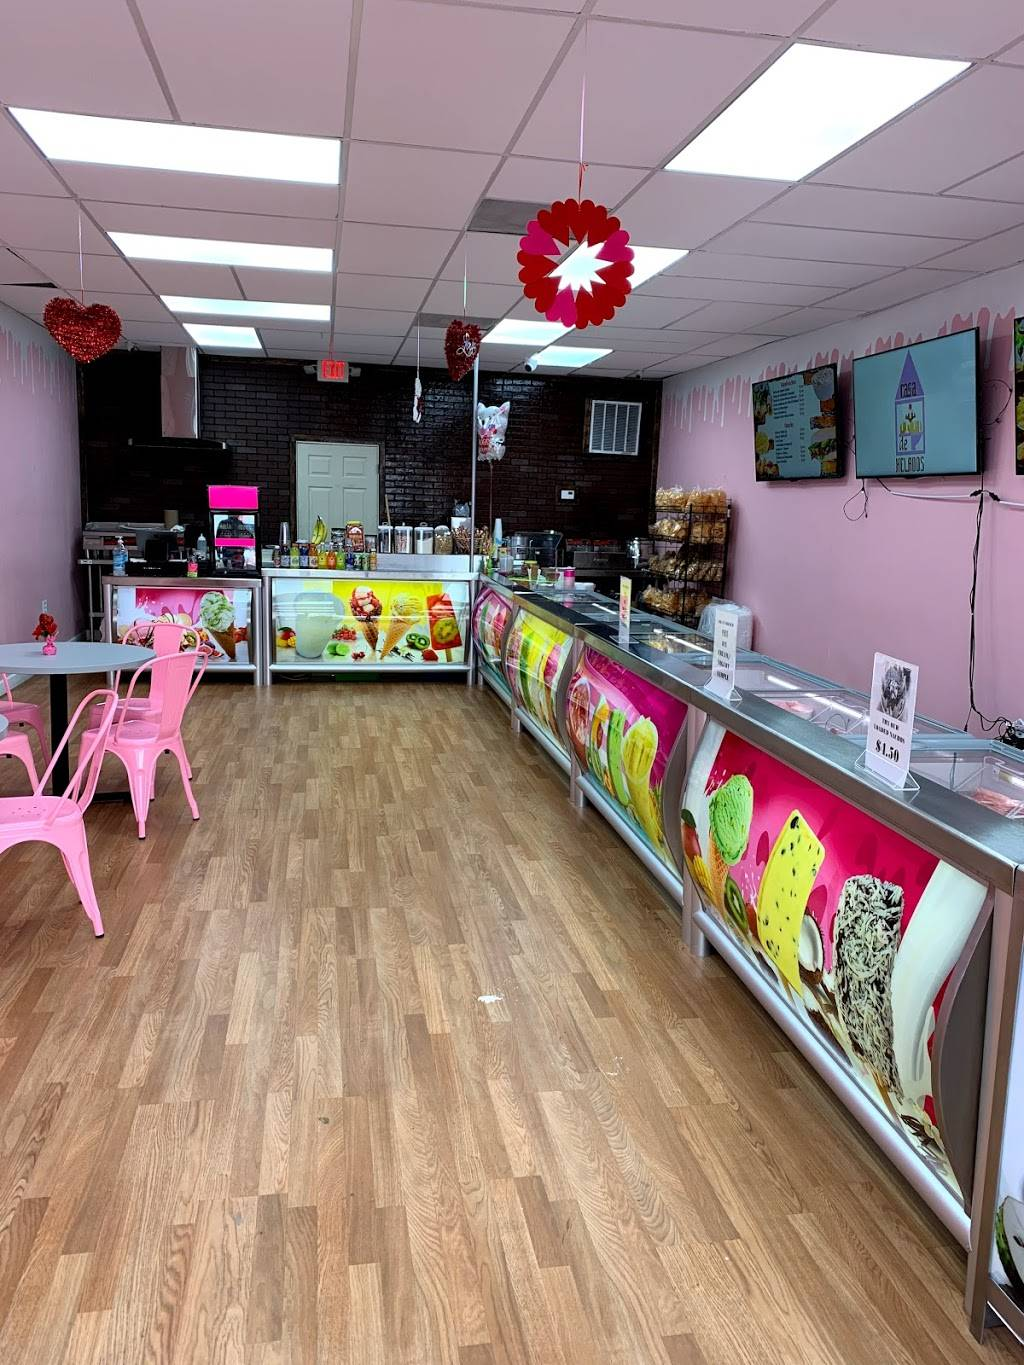 Casa de Helados | meal takeaway | 16309 Halsted St, Harvey, IL 60426, USA | 7086153500 OR +1 708-615-3500